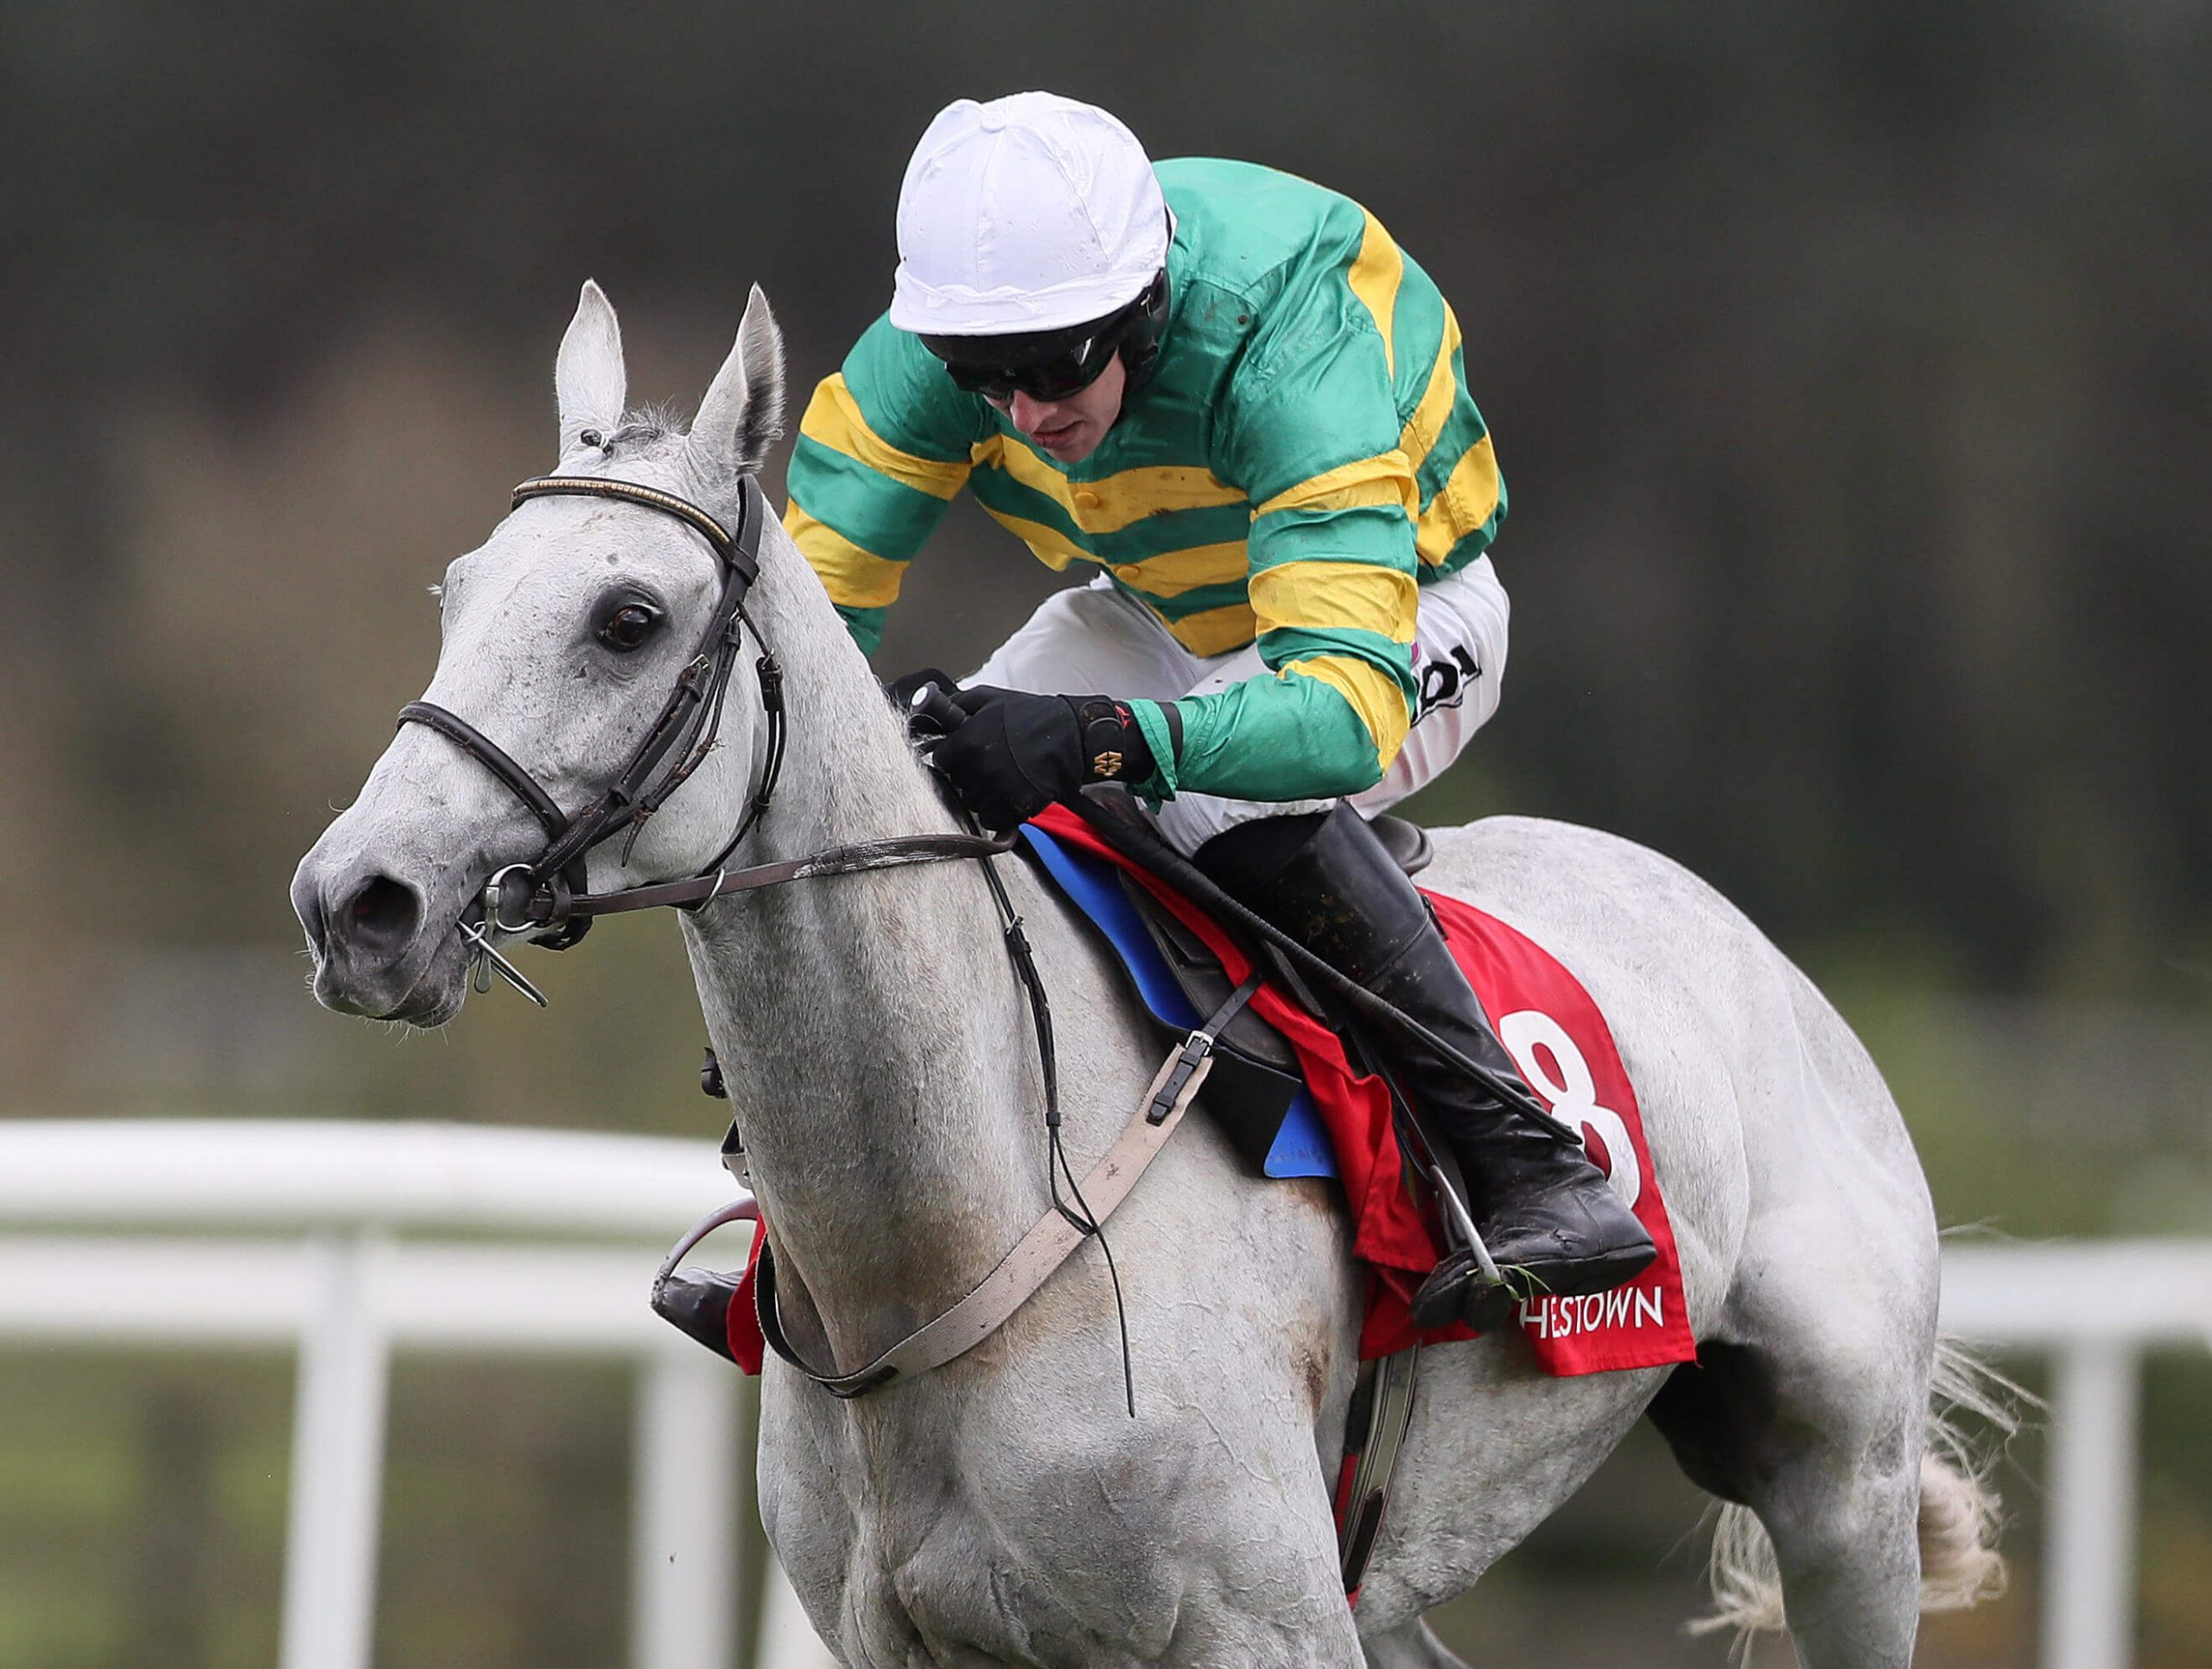 Elimay and Mark Walsh winning at the Punchestown Festival in May 2019 at Punchestown Racecourse in Ireland